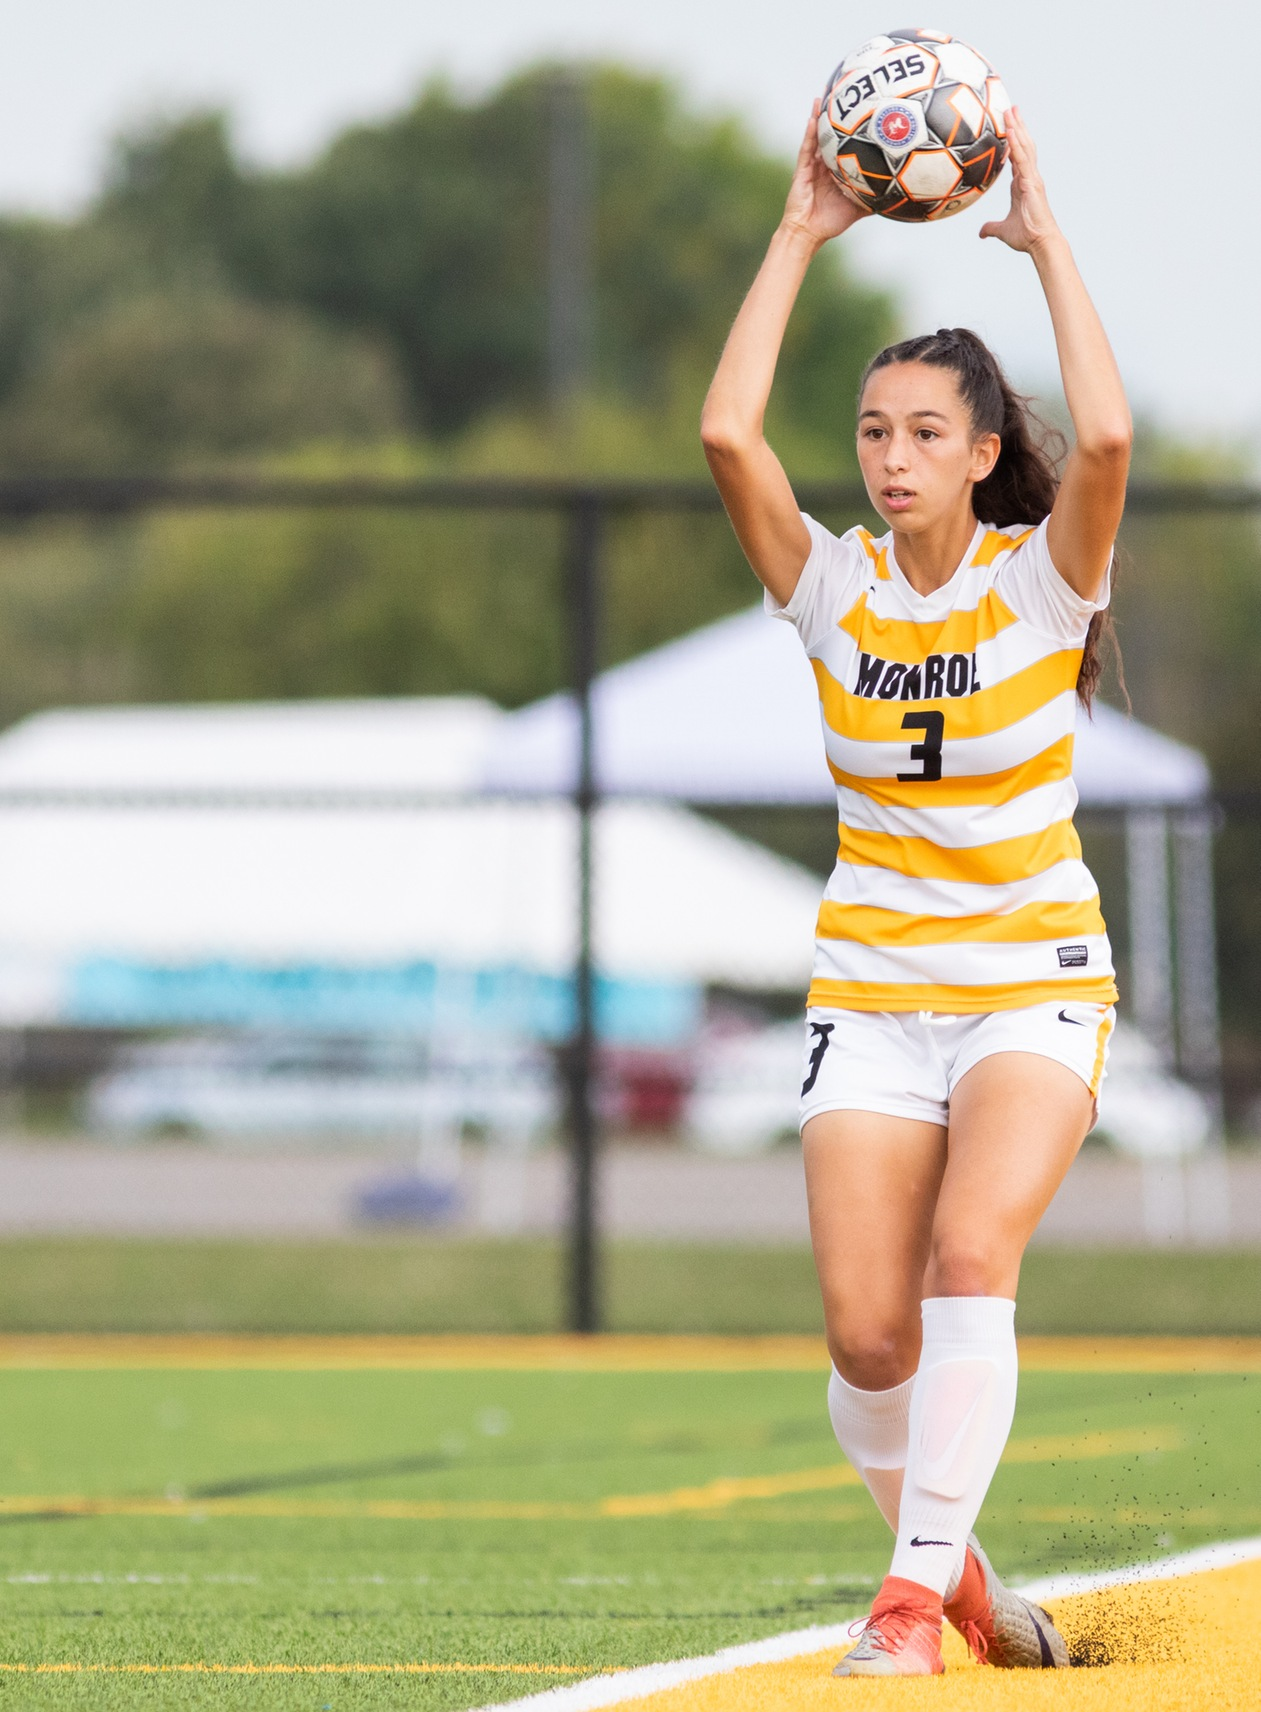 Lady Tribunes Roll Past Essex With 8-0 Victory